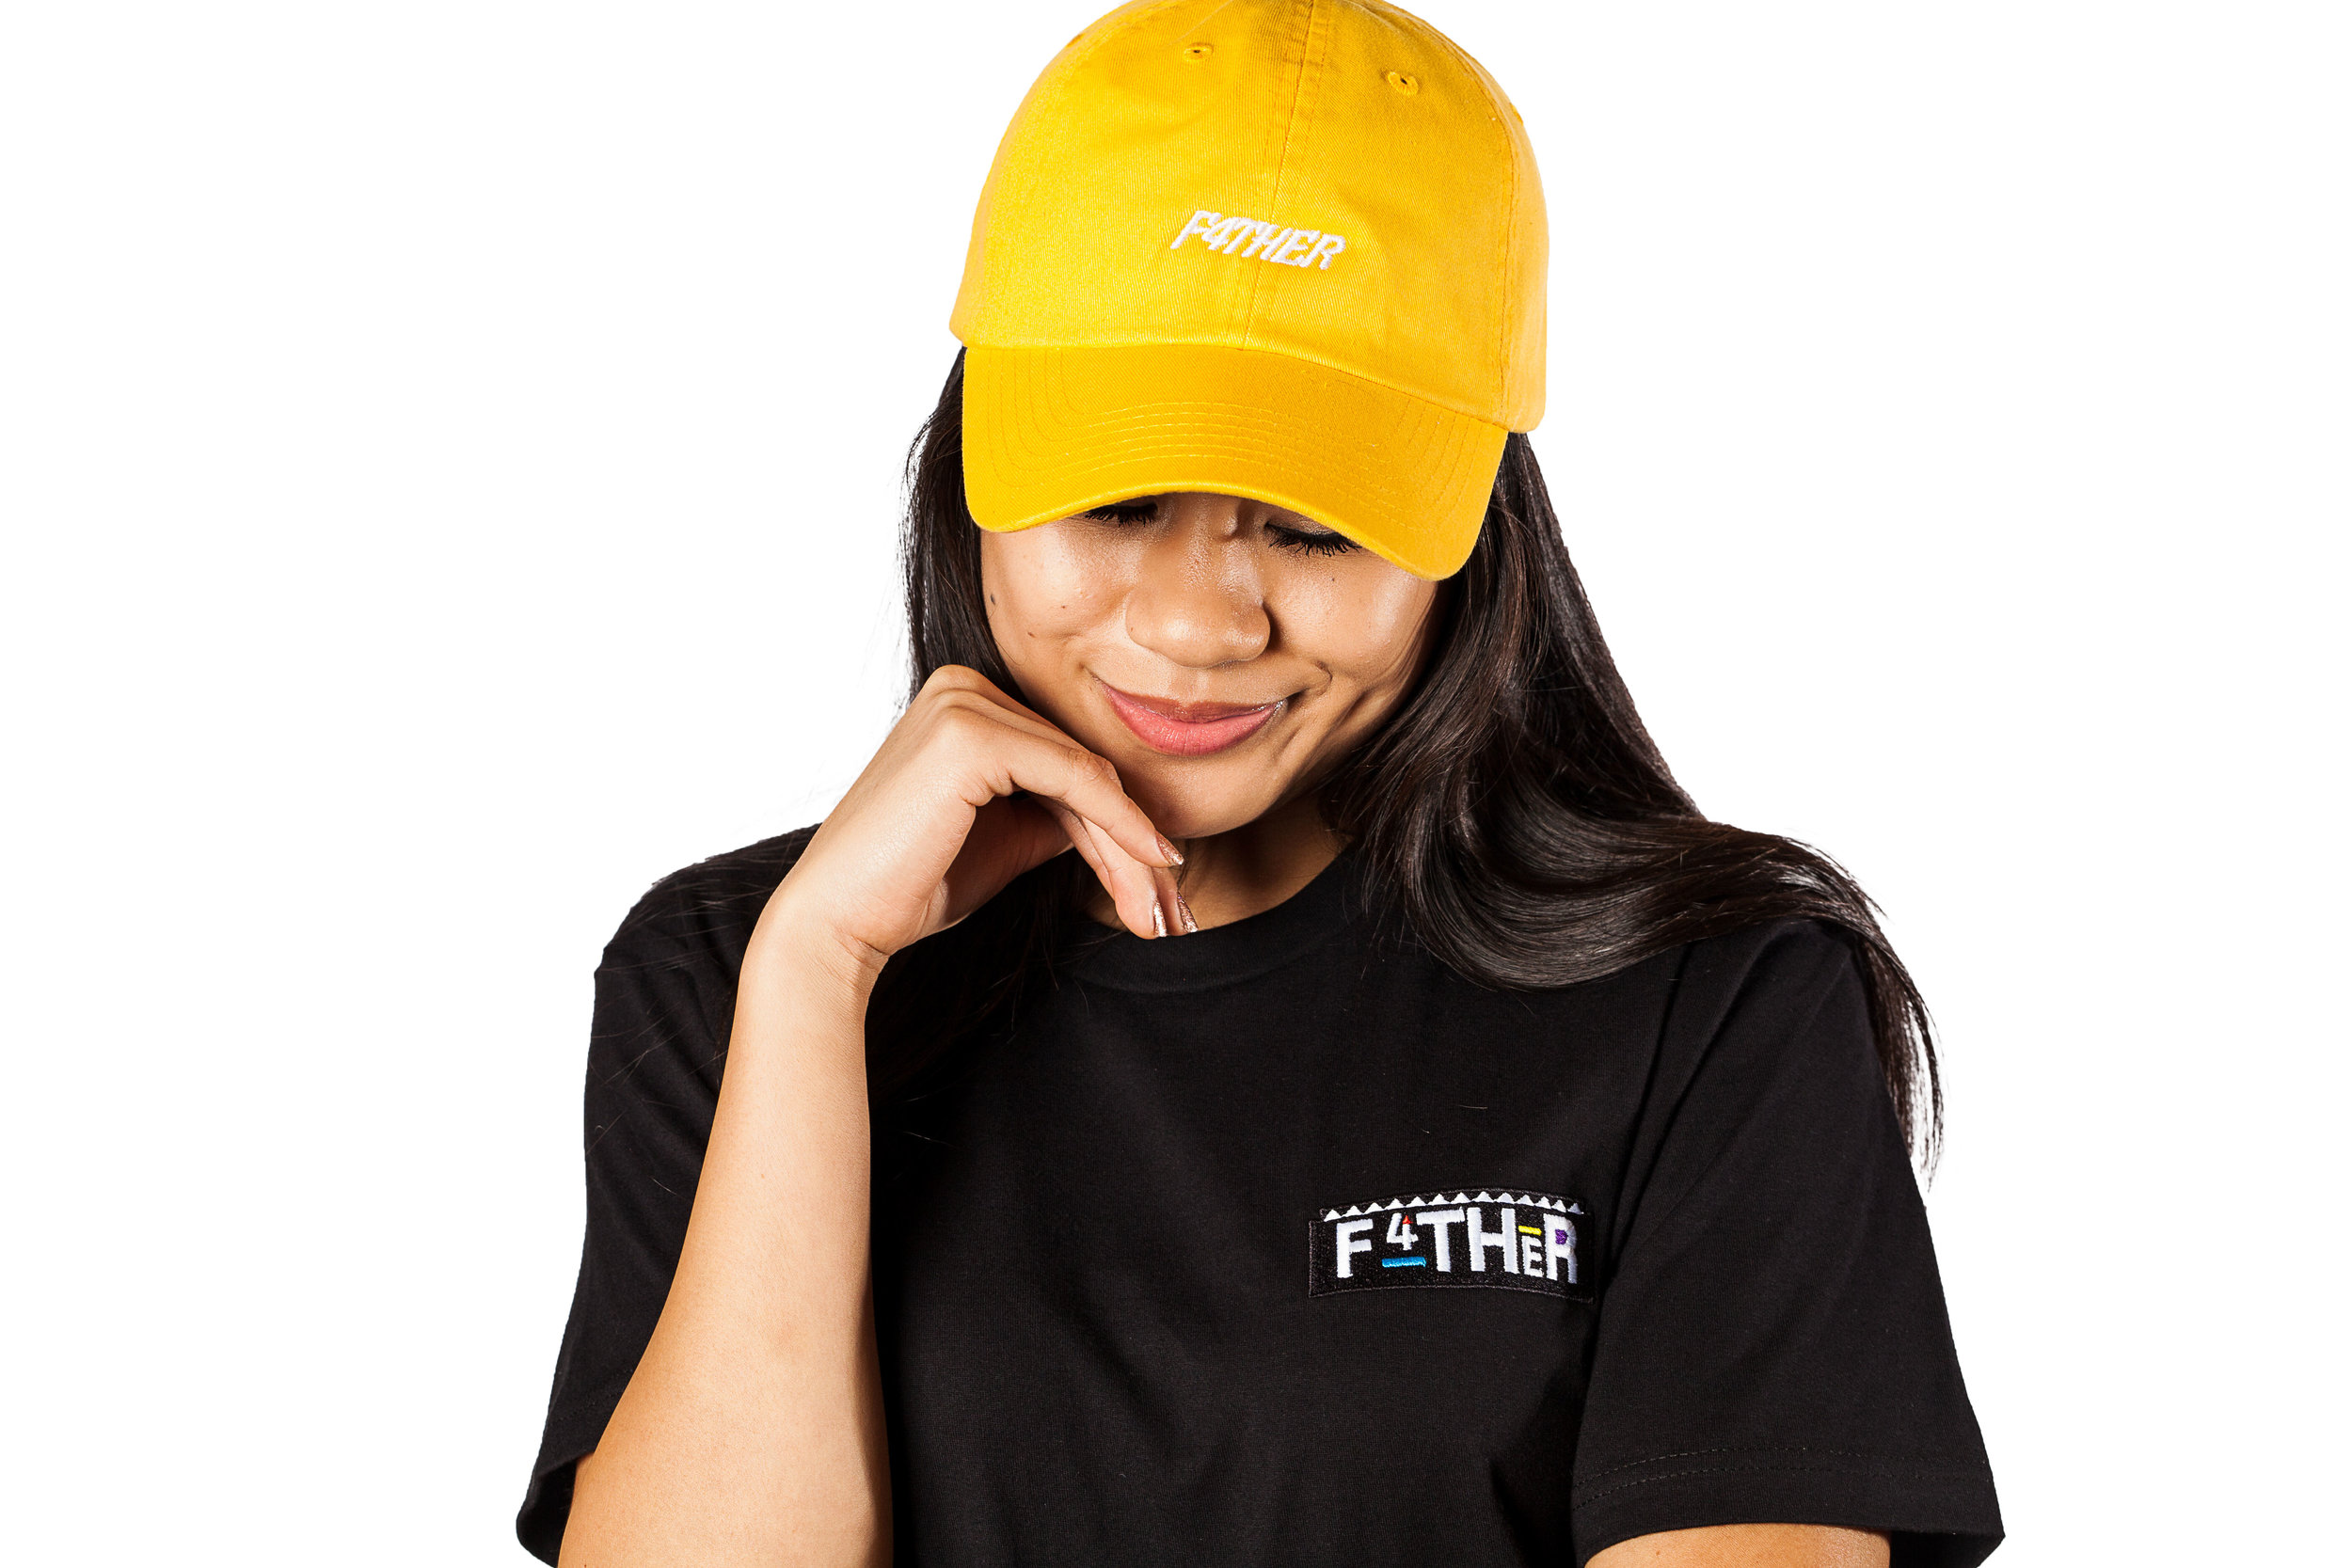 F4THER Brand